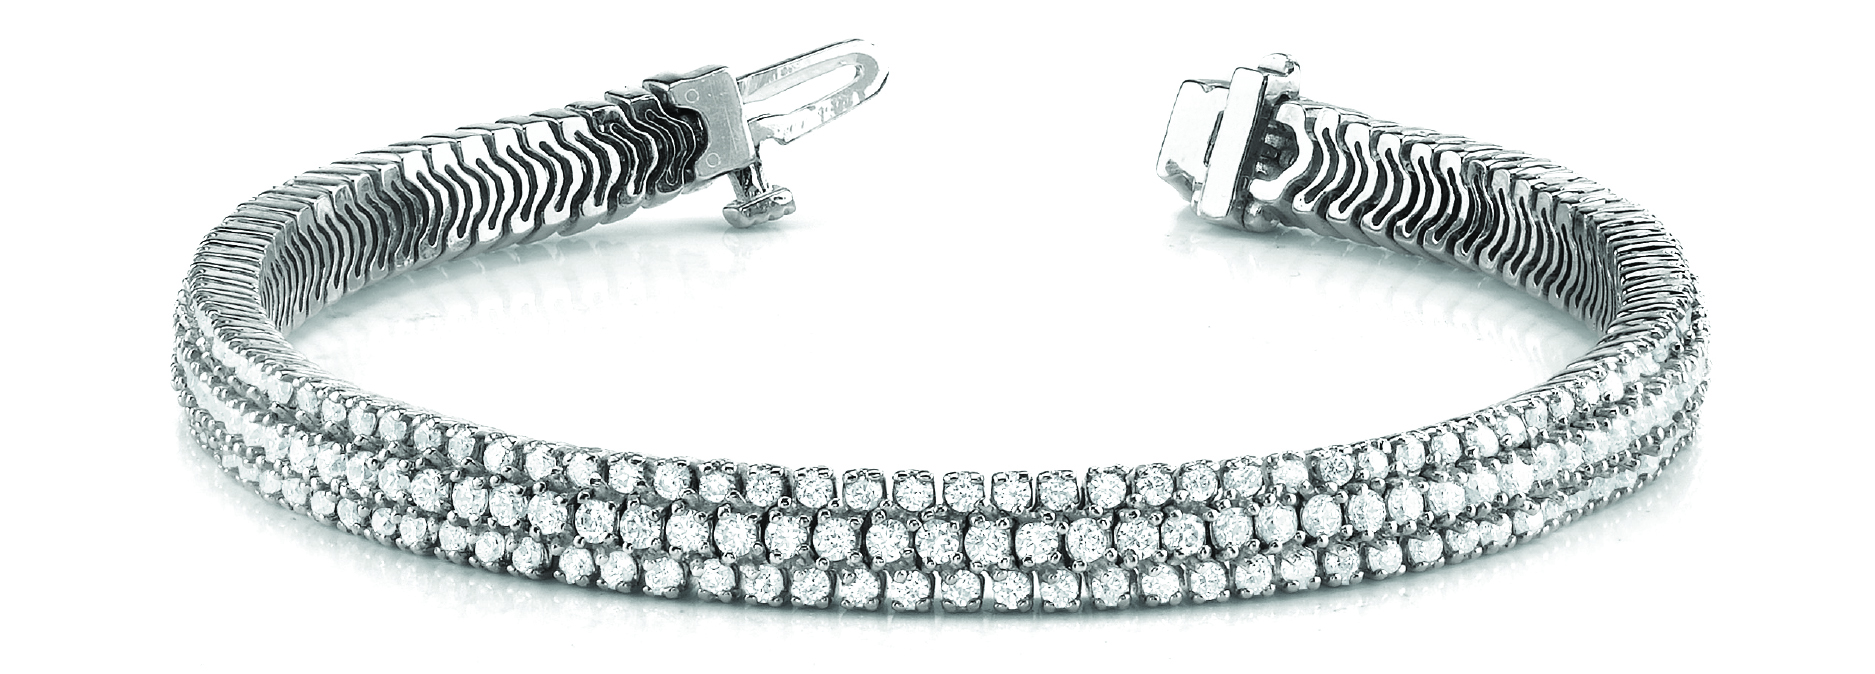 Multi Row Etoil Round Diamond Bracelet 4.5 Ct.